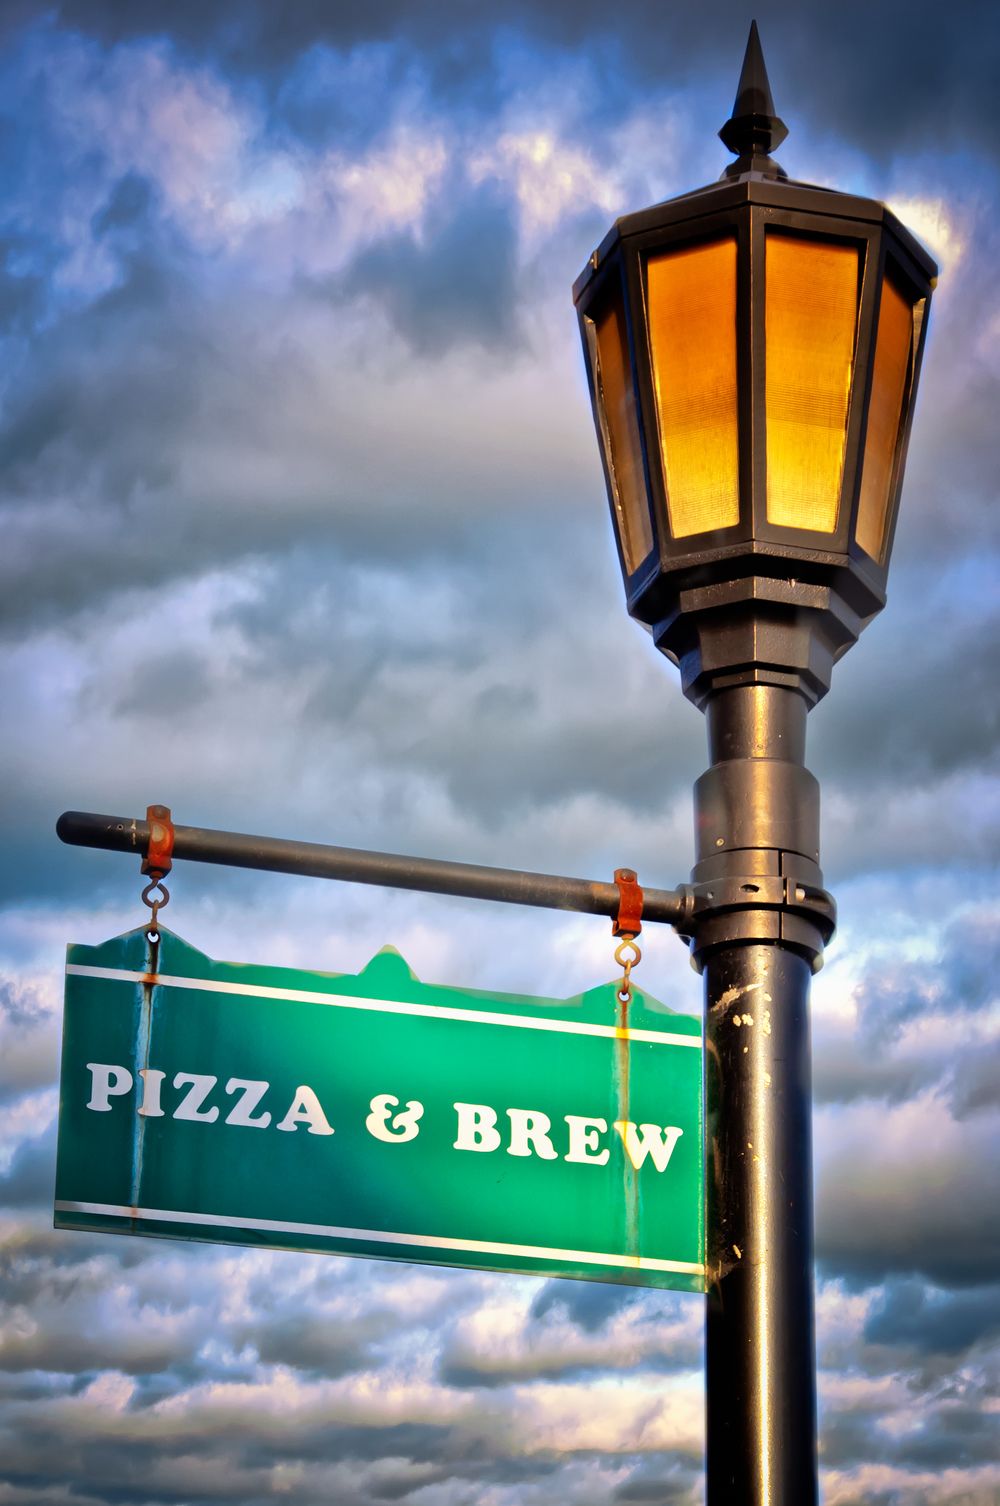 1001_Pizza Brew_004-2.jpg